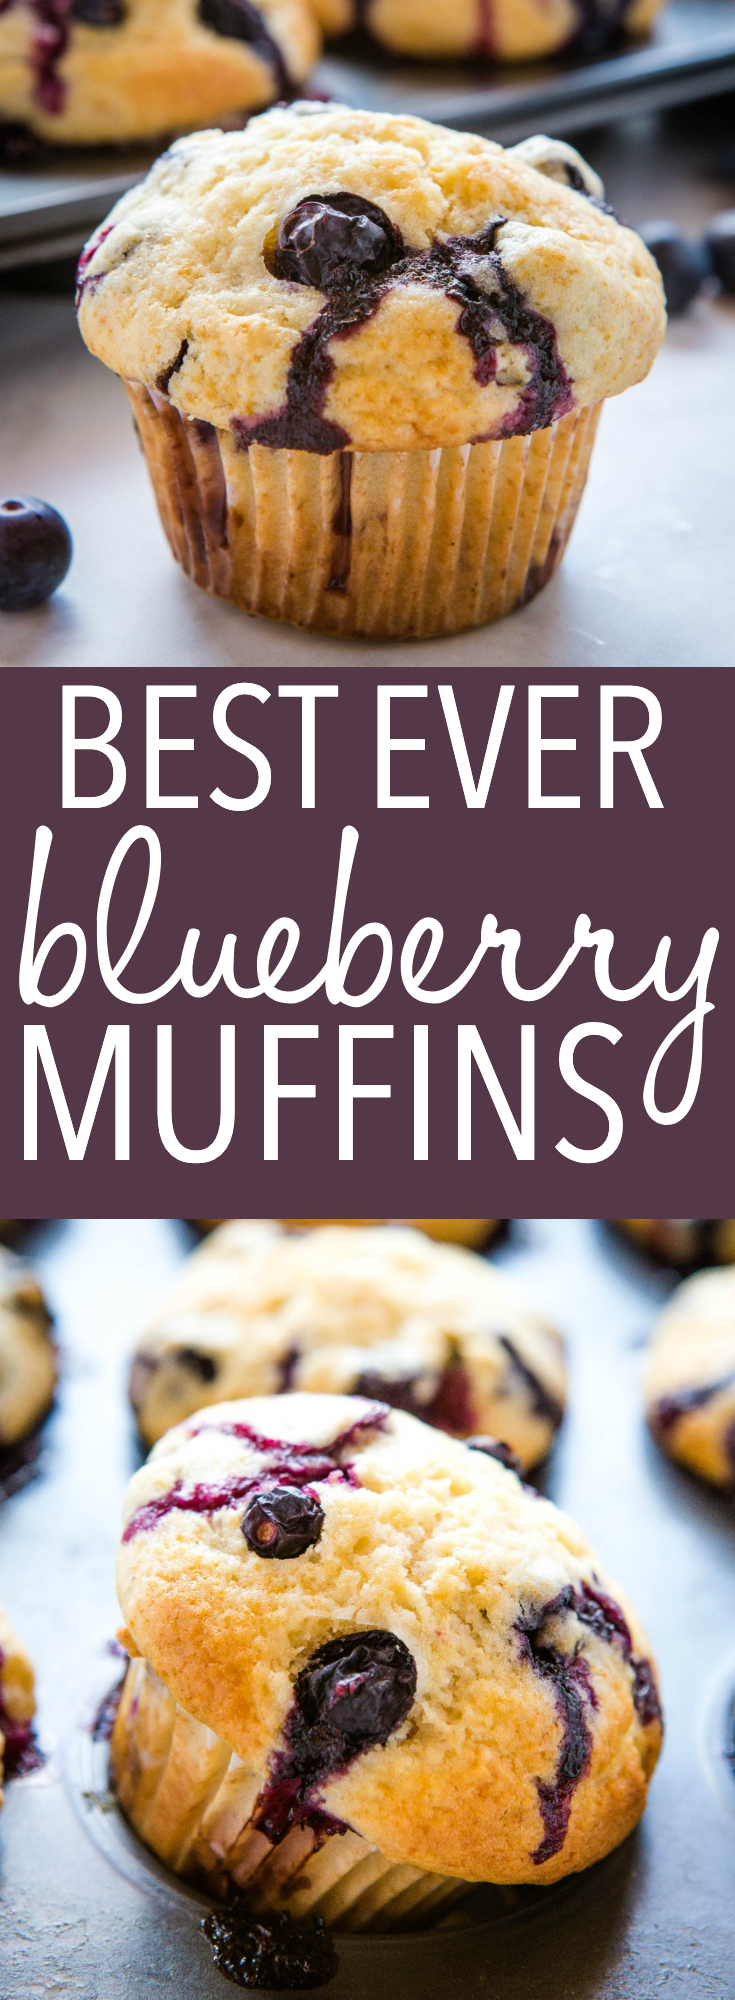 These Best Ever Blueberry Muffins are the perfect sweet treat for breakfast, brunch or snack. Make this recipe for moist, tender muffins full of fresh juicy blueberries! Recipe from thebusybaker.ca! #bloueberries #muffins #blueberrymuffins #muffinsrecipe #besteverblueberrymuffins via @busybakerblog